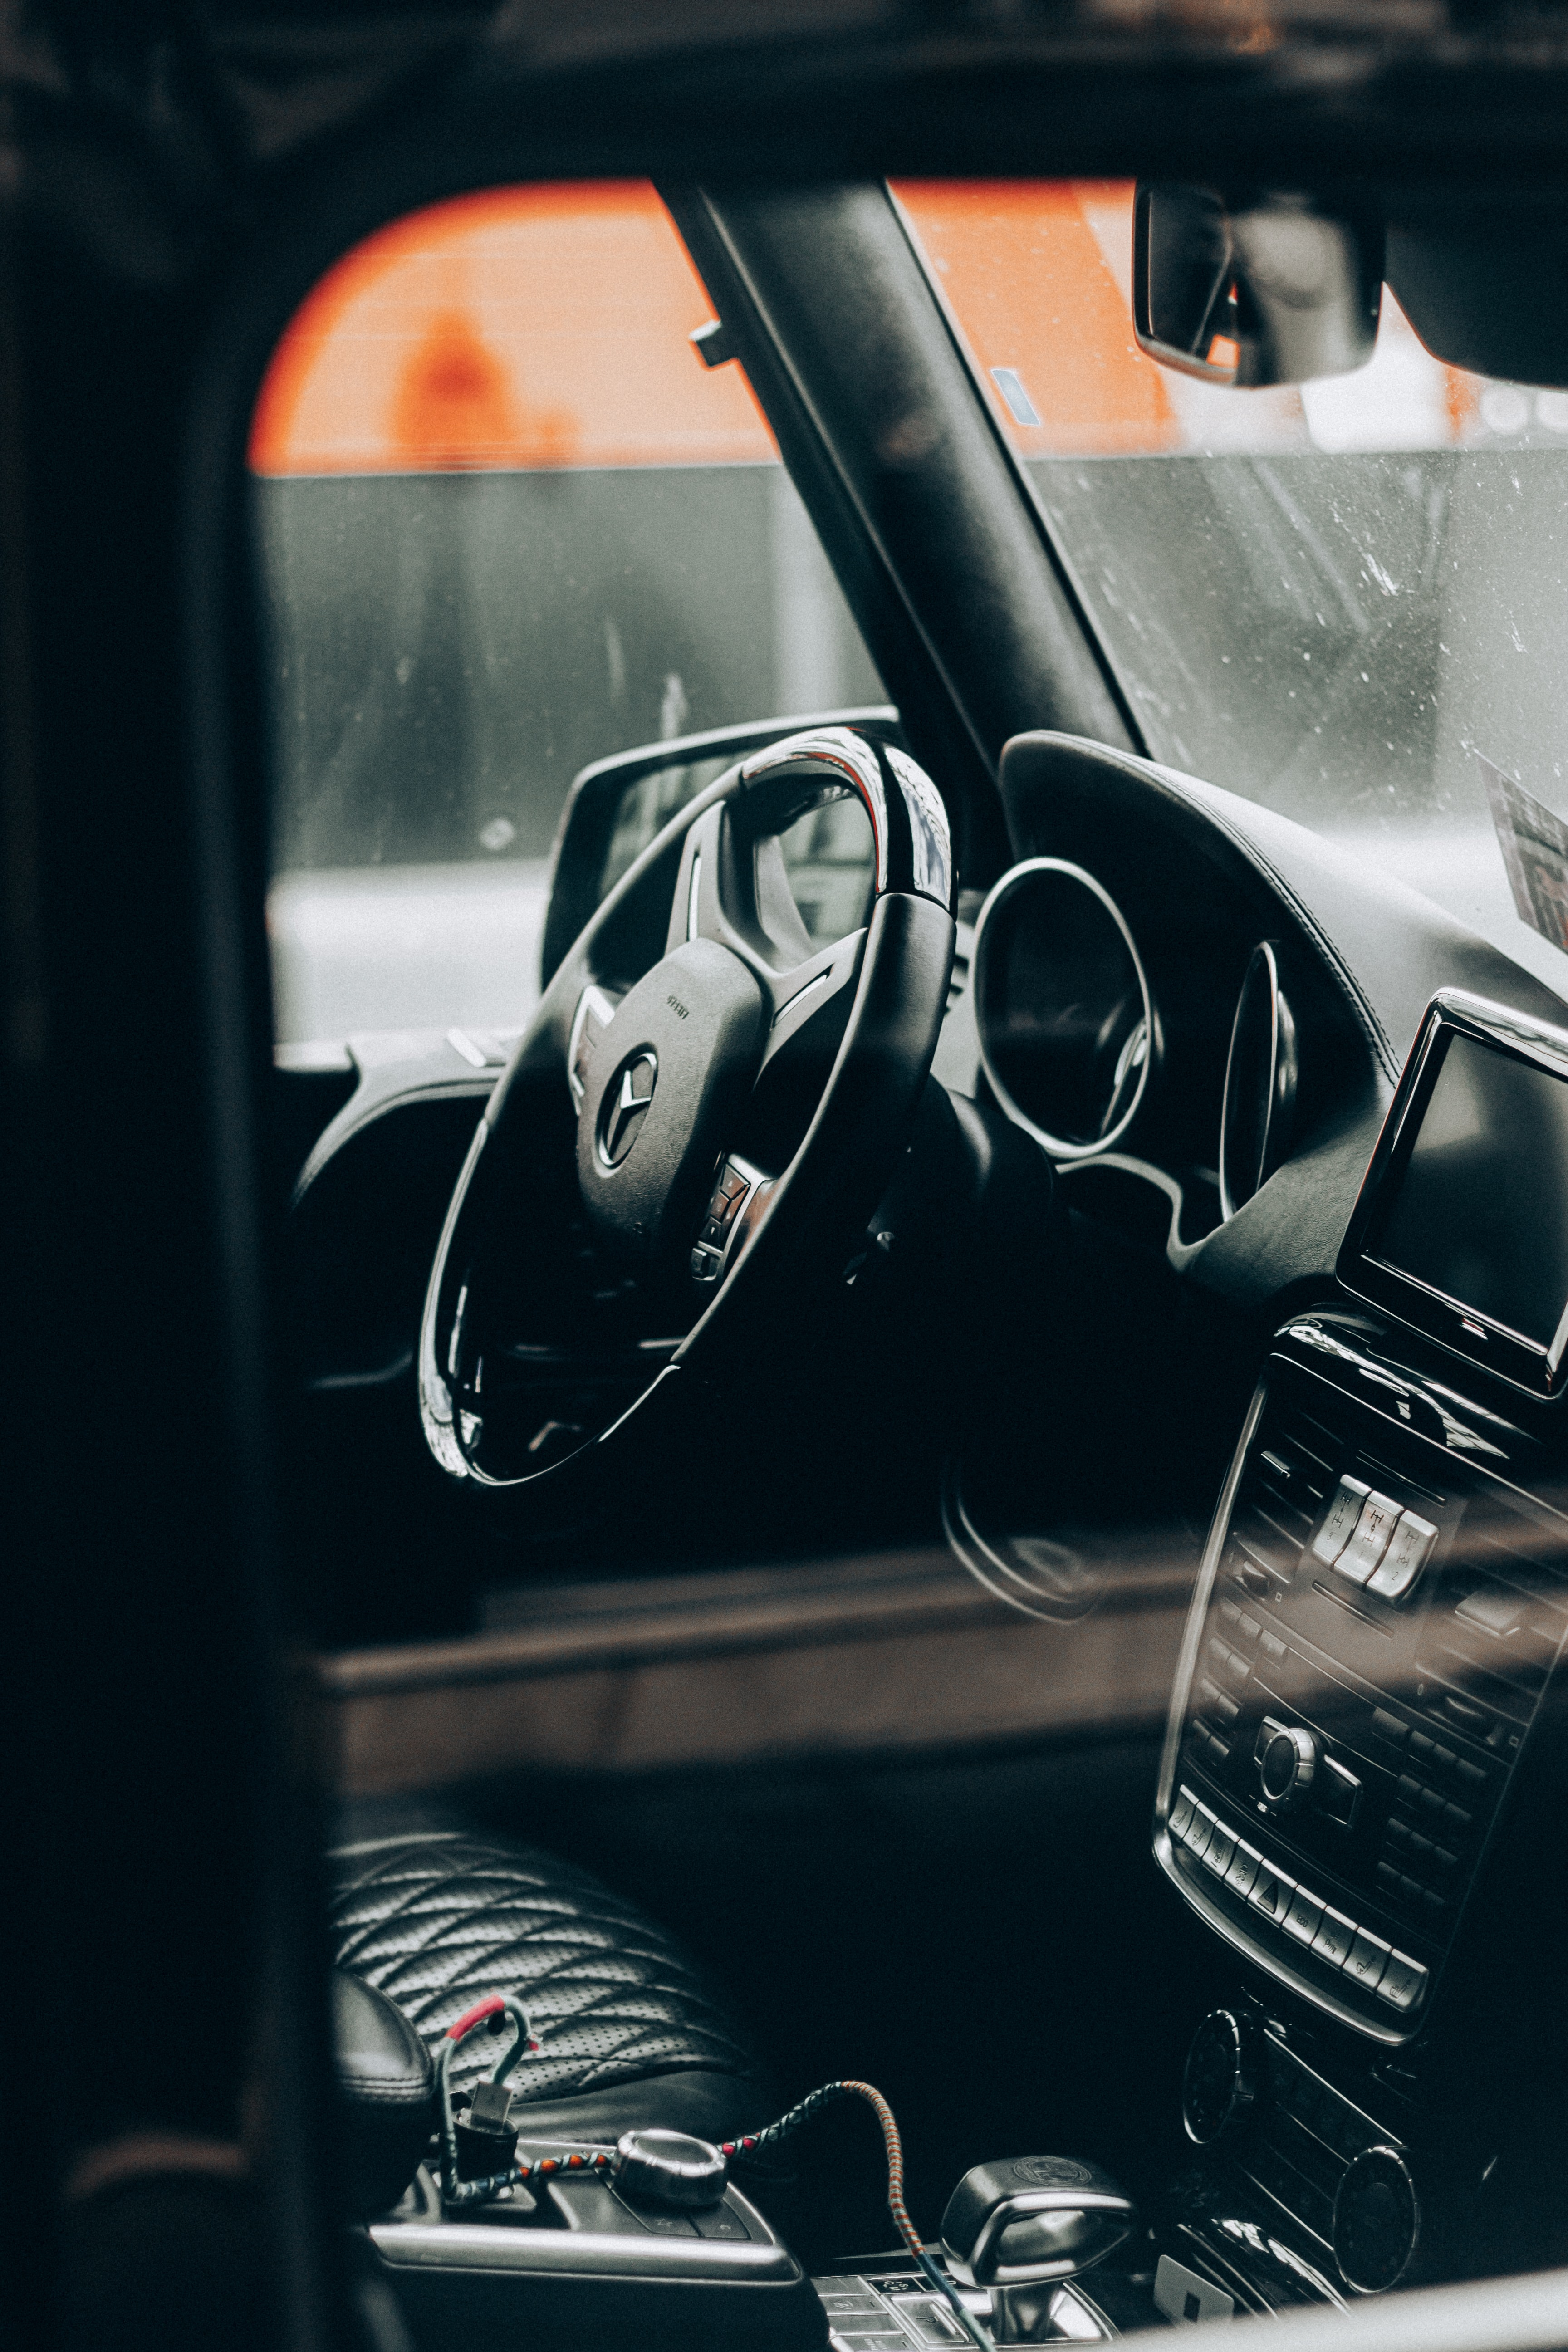 Black Car Steering Wheel During Night Time Photo Free Automobile Image On Unsplash